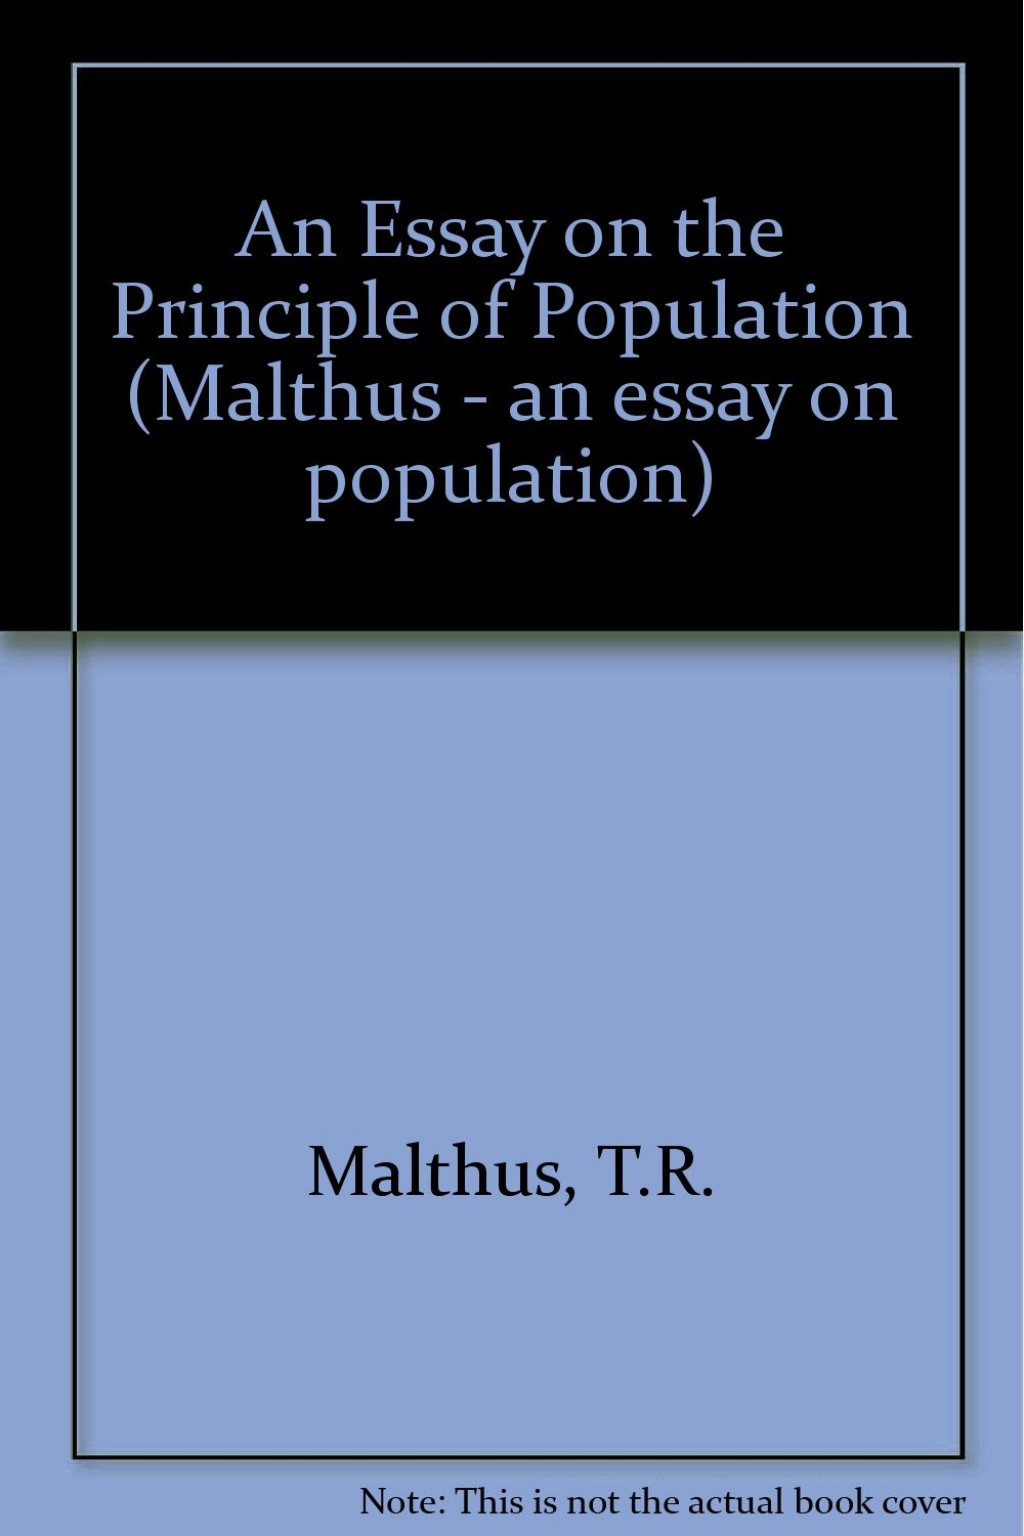 009 Essay Example Thomas Malthus An On The Principle Of Population Marvelous Summary Analysis Argued In His (1798) That Large